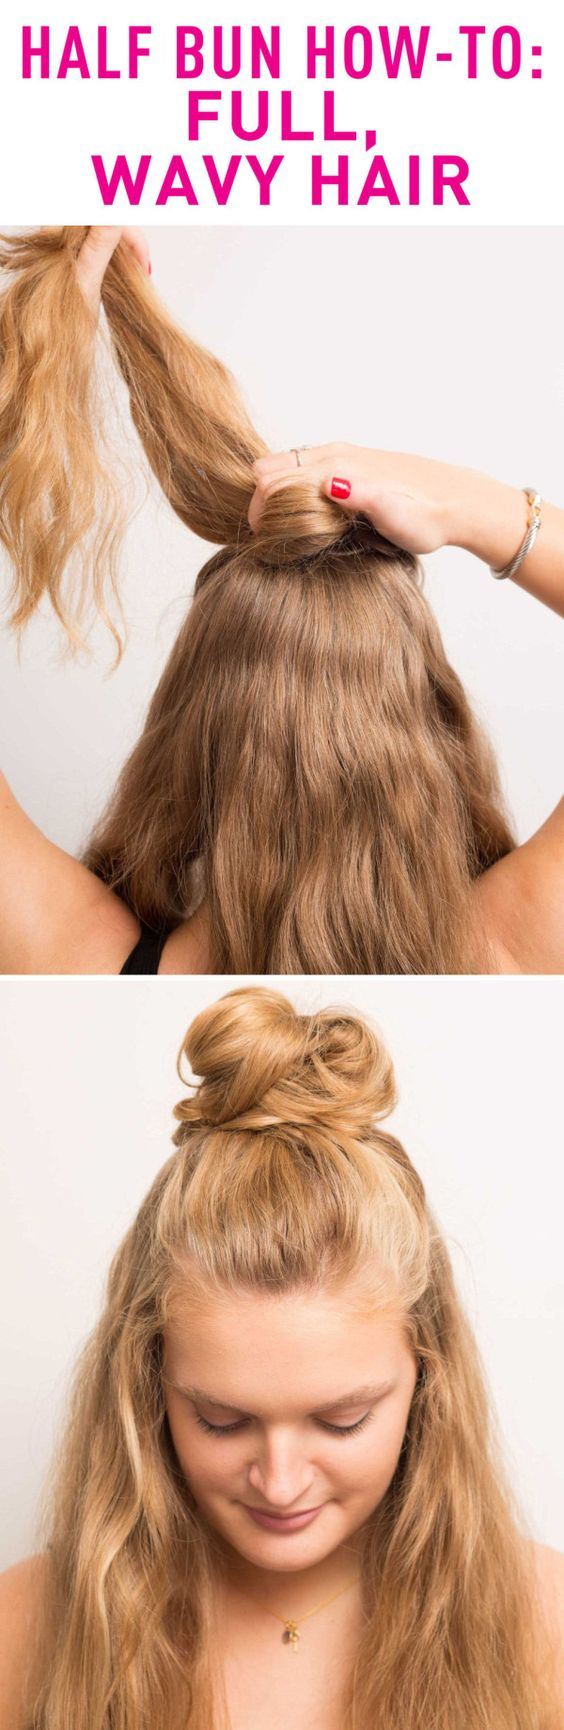 17 Tutorials To Show You How To Make Half Buns Pretty